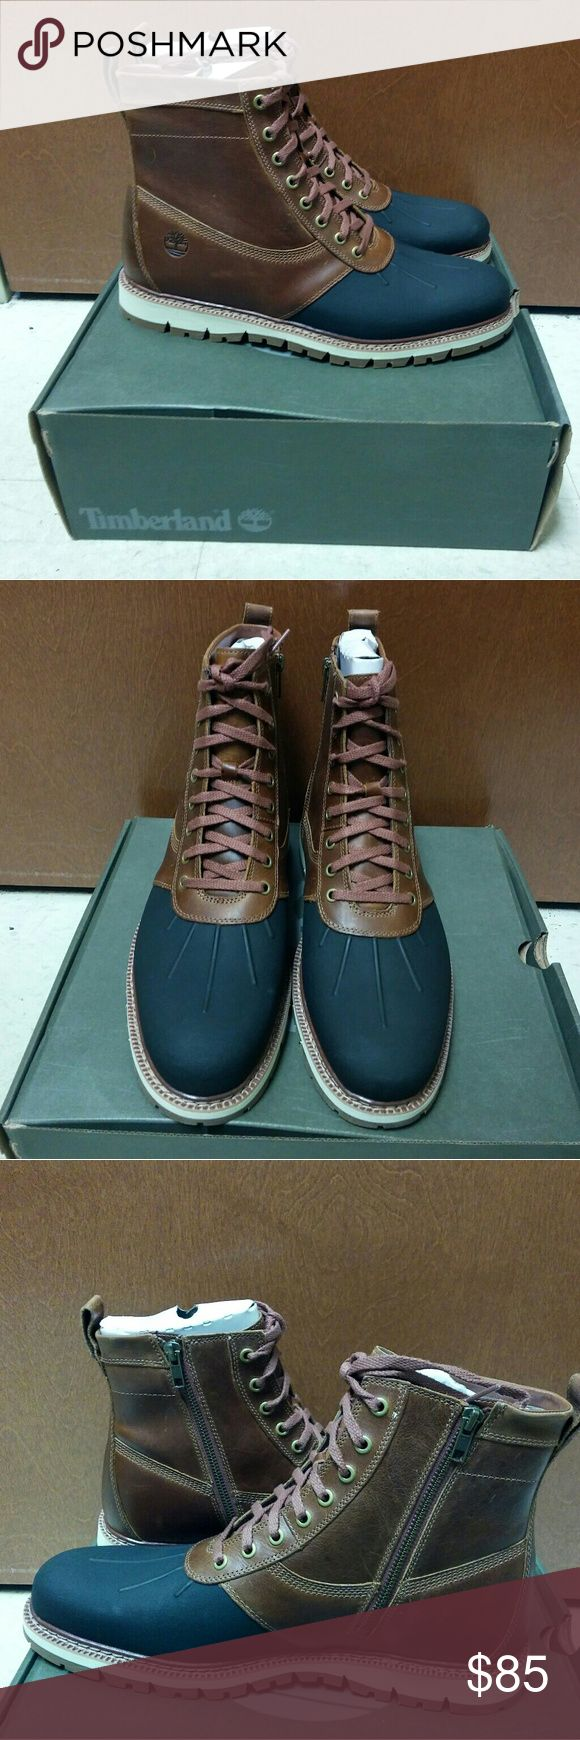 New Timberland Boots 12M Timberland TBOA1JT9 boots. New in box Timberland Shoes Boots